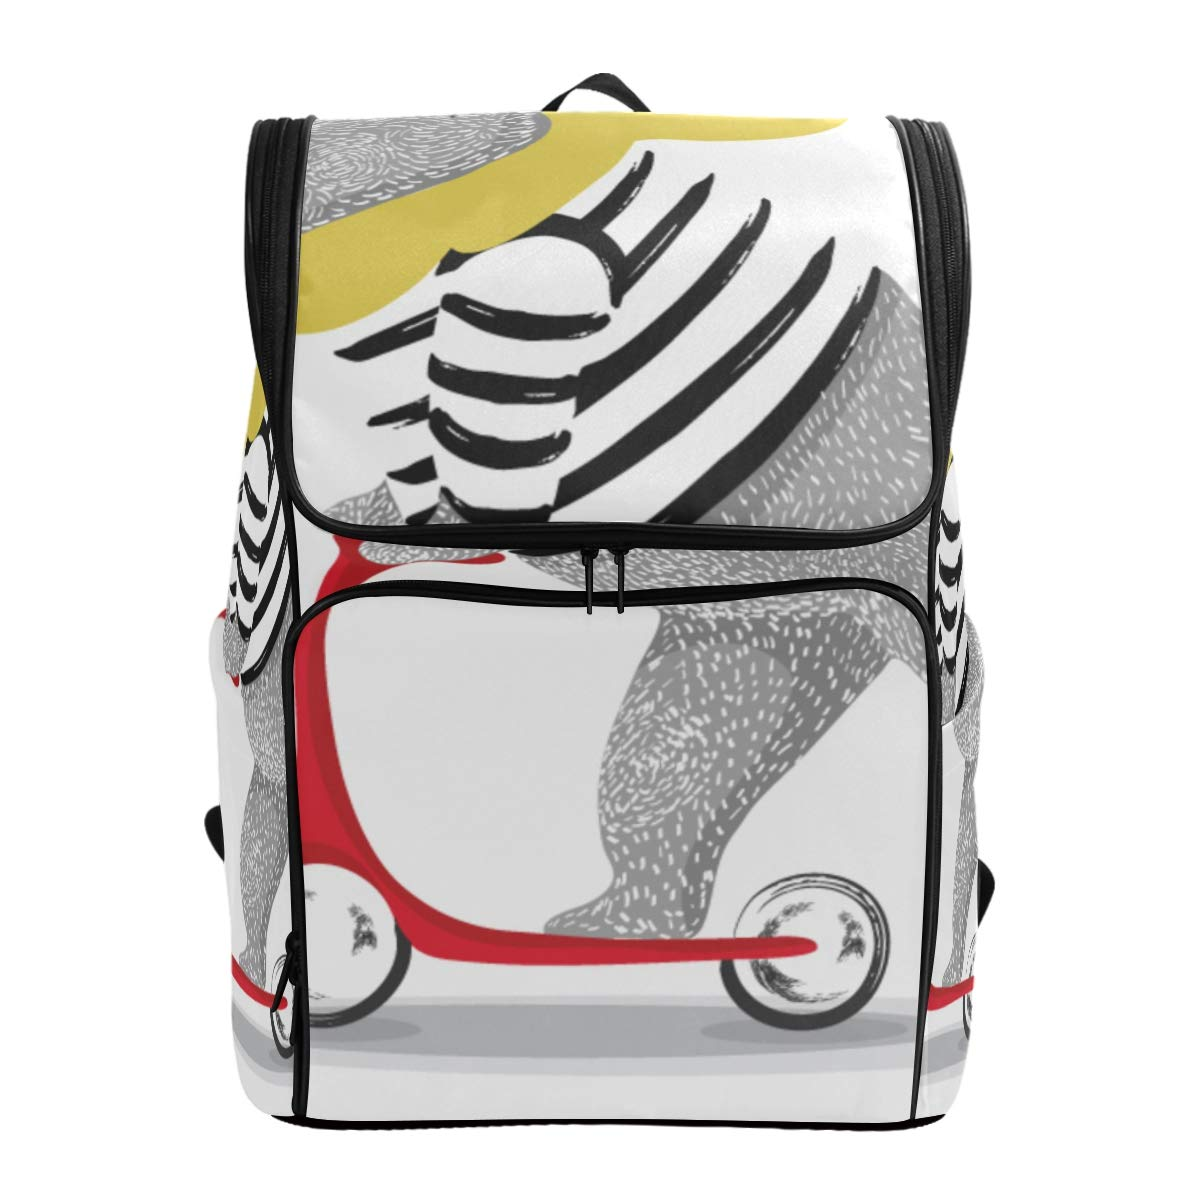 YCHY Backpack Cute Bear Scooter Vector Designanimal Illustrationt bag by YCHY